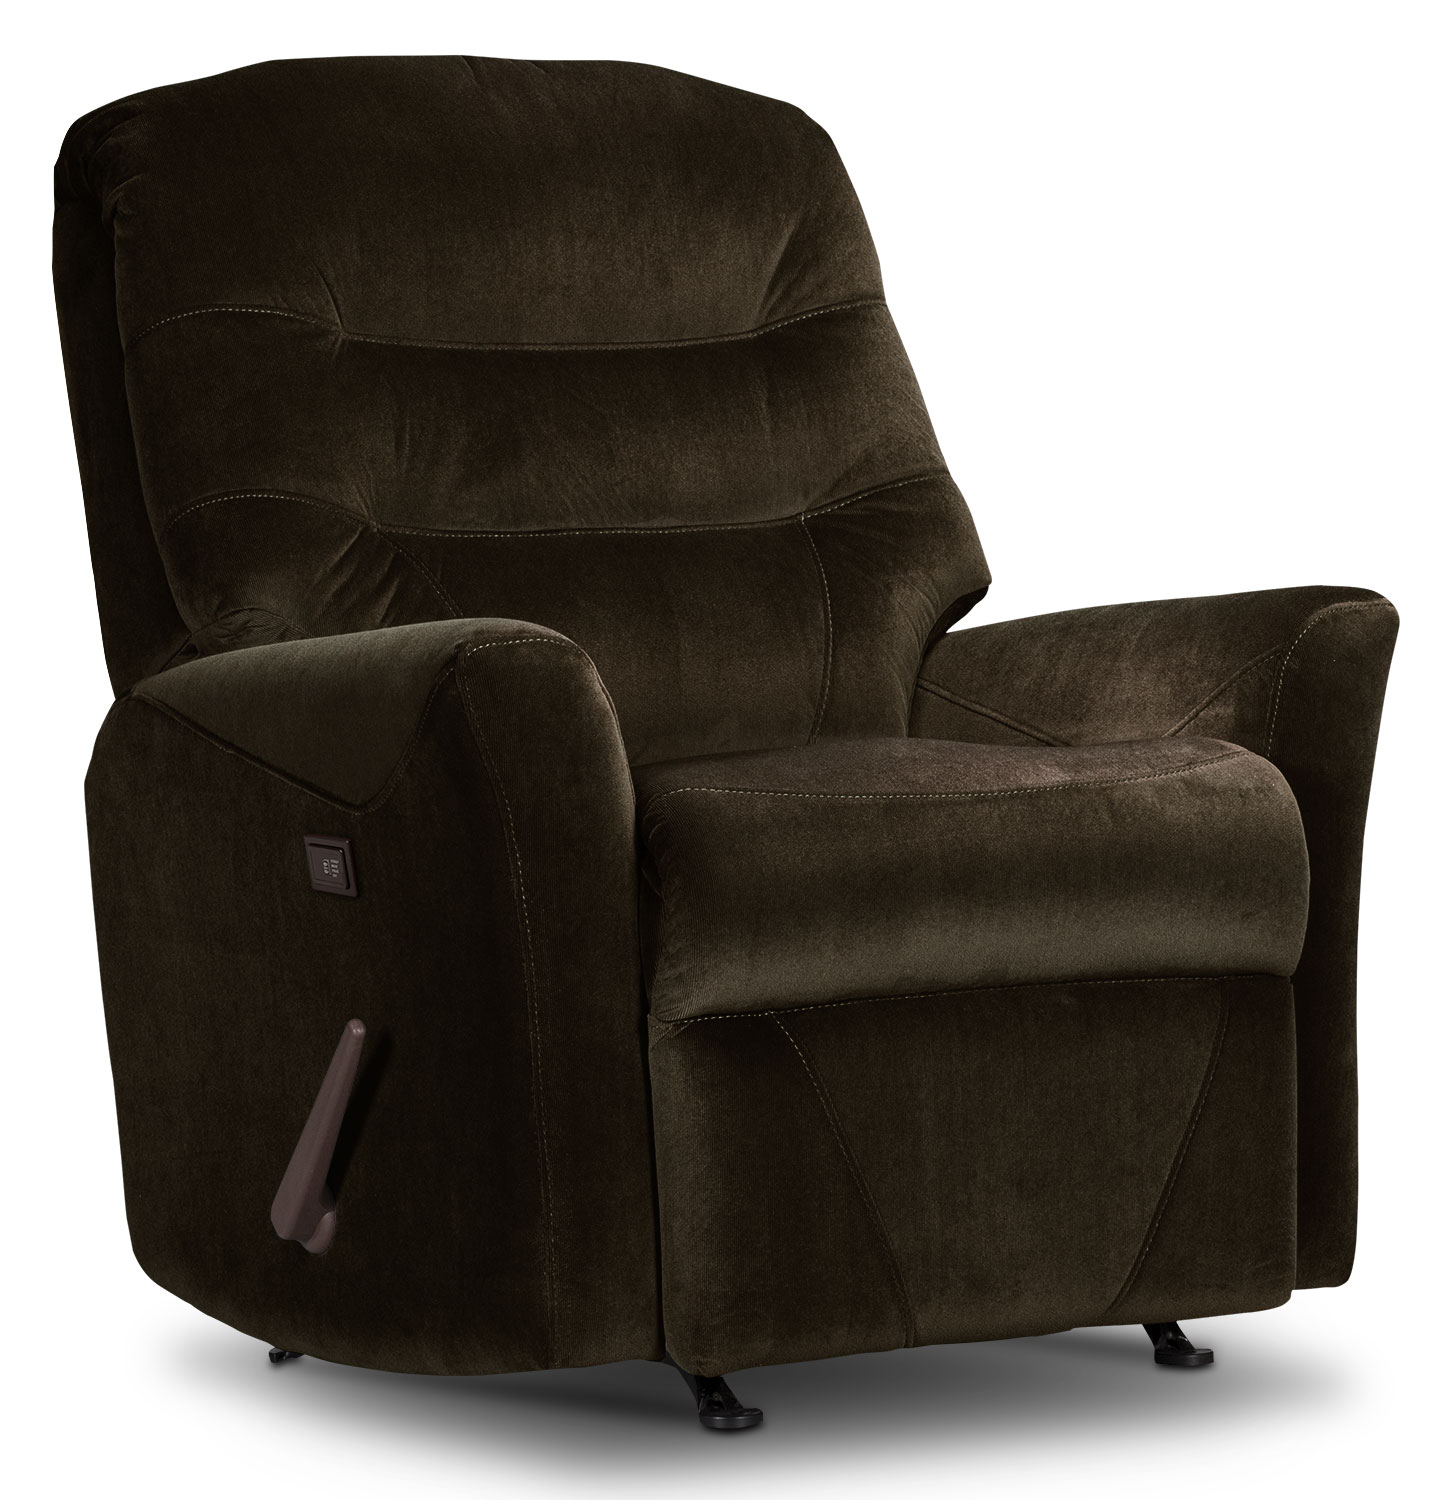 Living Room Furniture - Designed2B Recliner 4560 Microsuede Massage Recliner - Chocolate